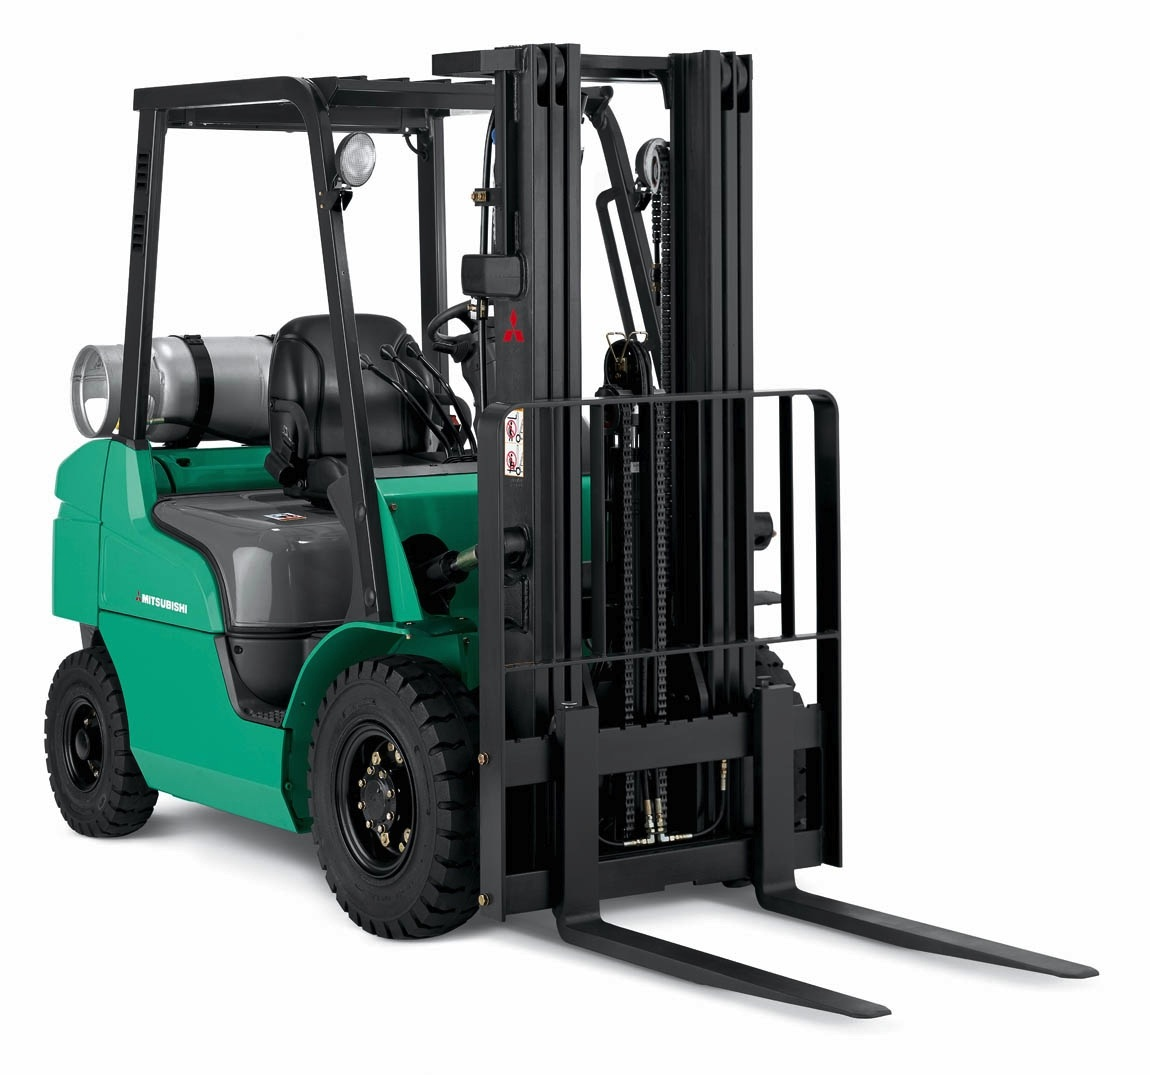 mitsubishi paul parts manila forklift and rich philippines services marketing